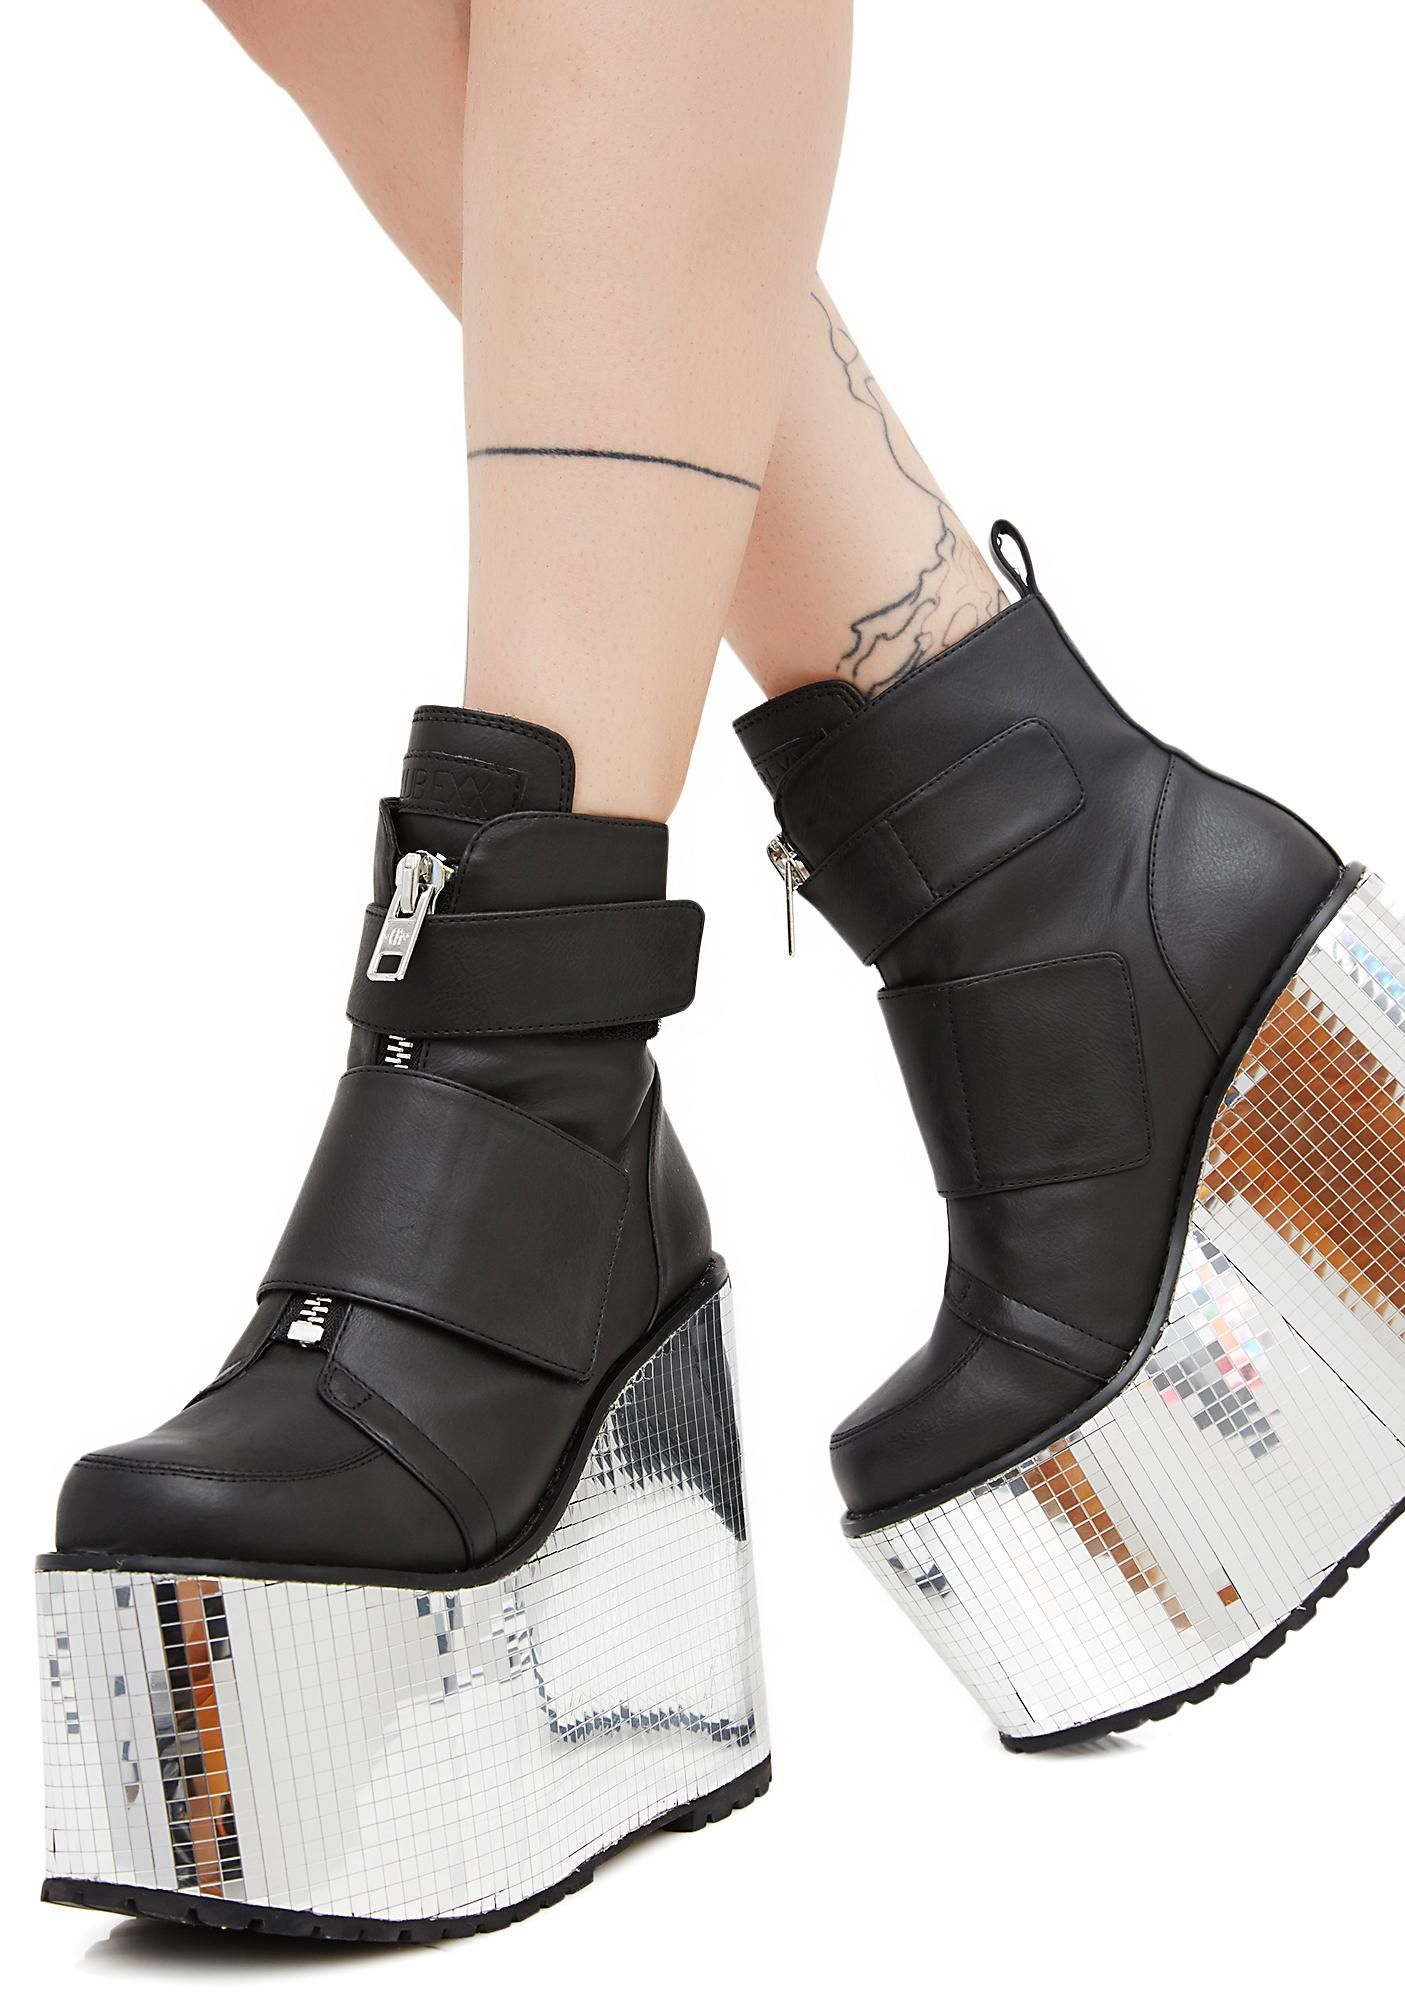 b33dfb17d4d Club Exx Diabolical Disco Platform Wedges Plato